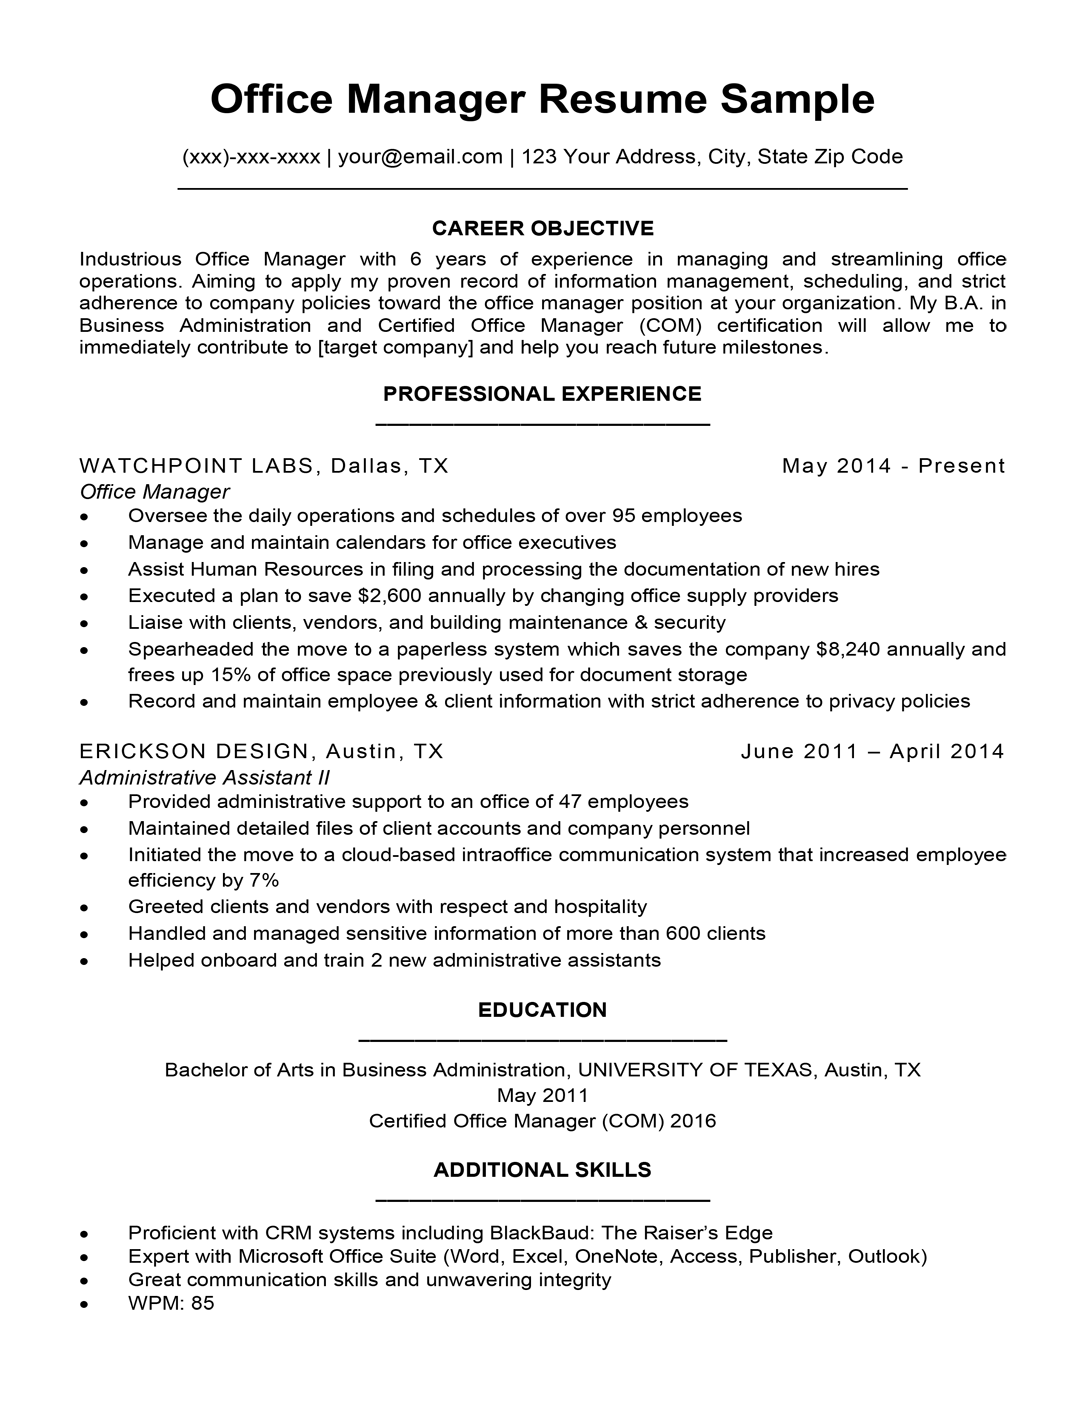 office manager resume objective